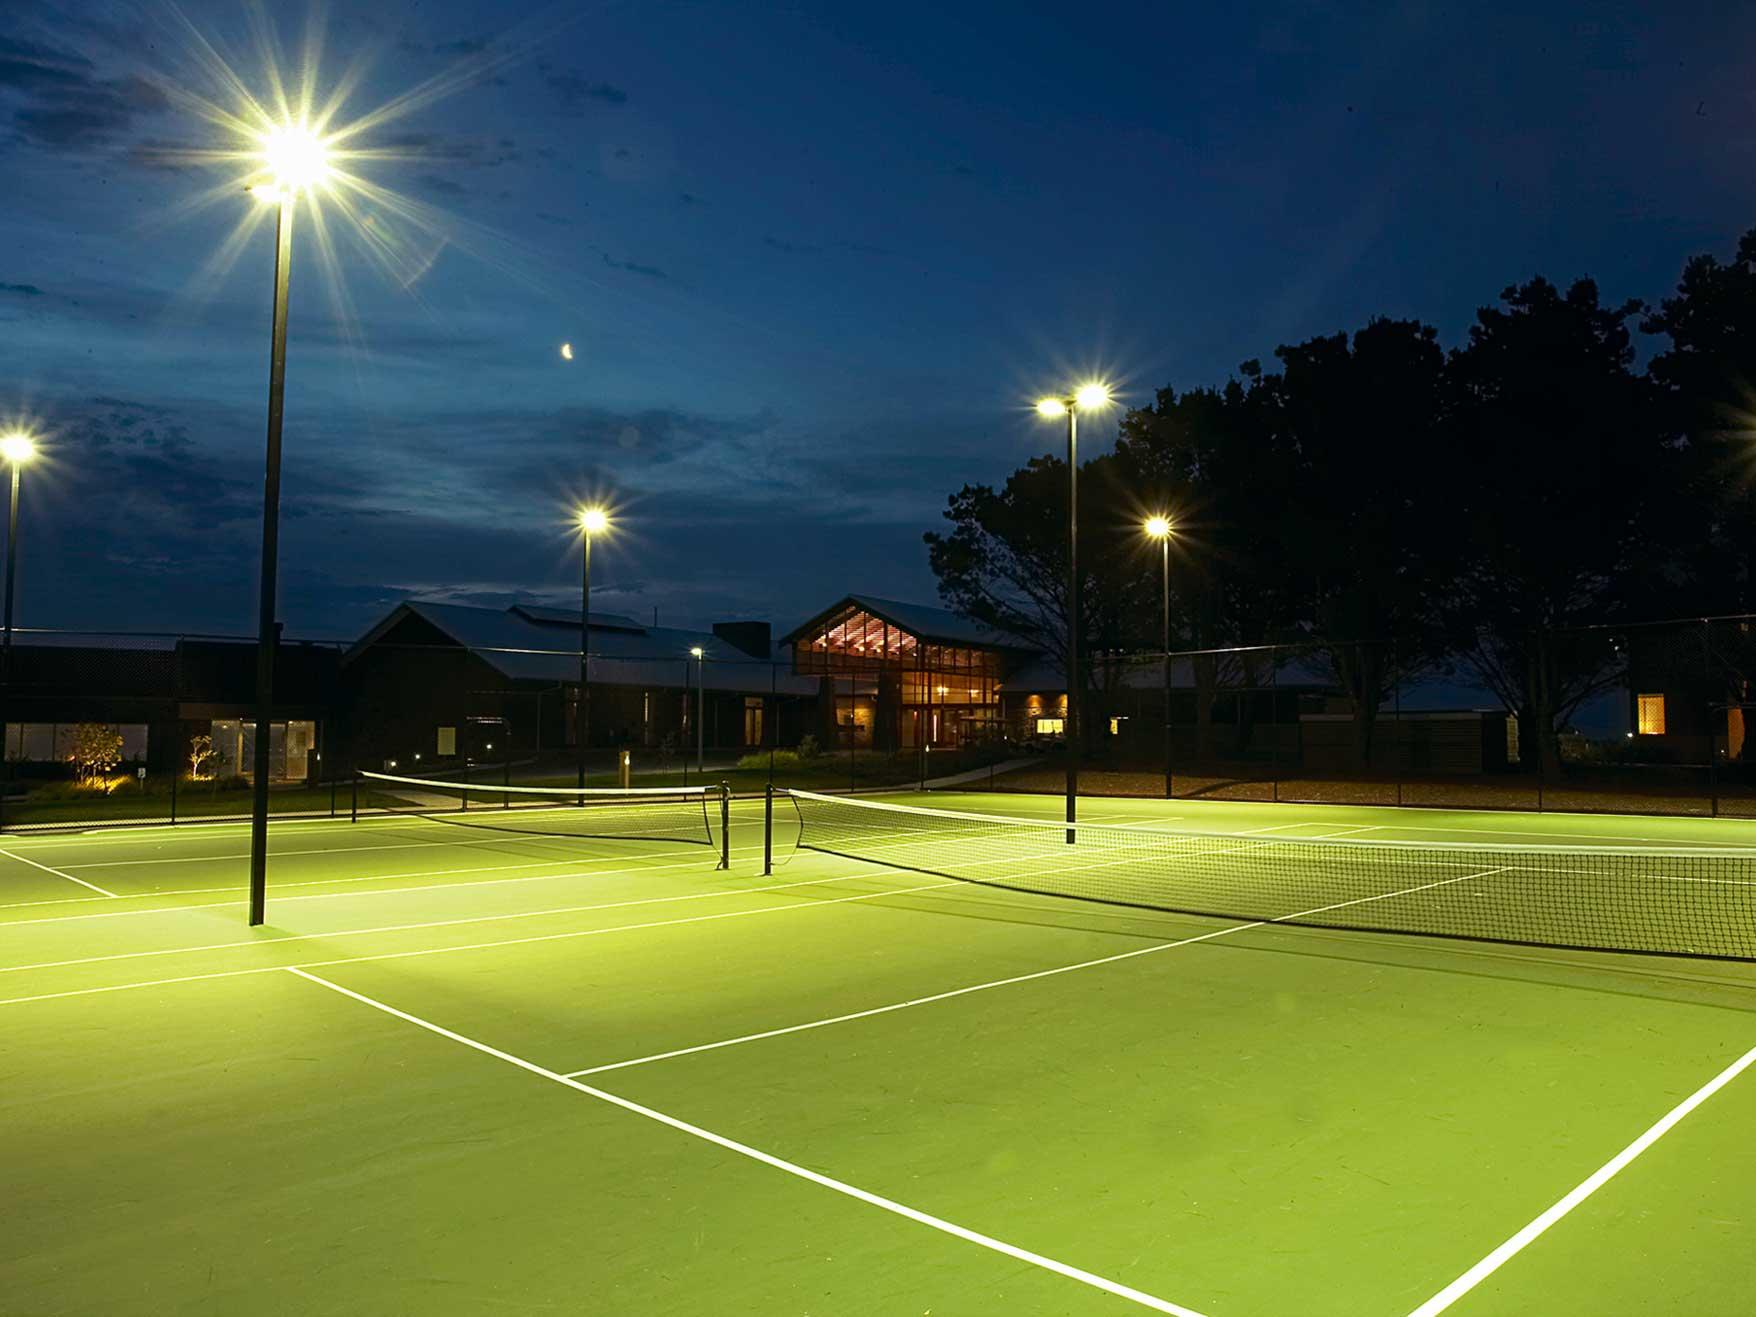 Lit tennis courts at night with lights on at Silverwater Resort